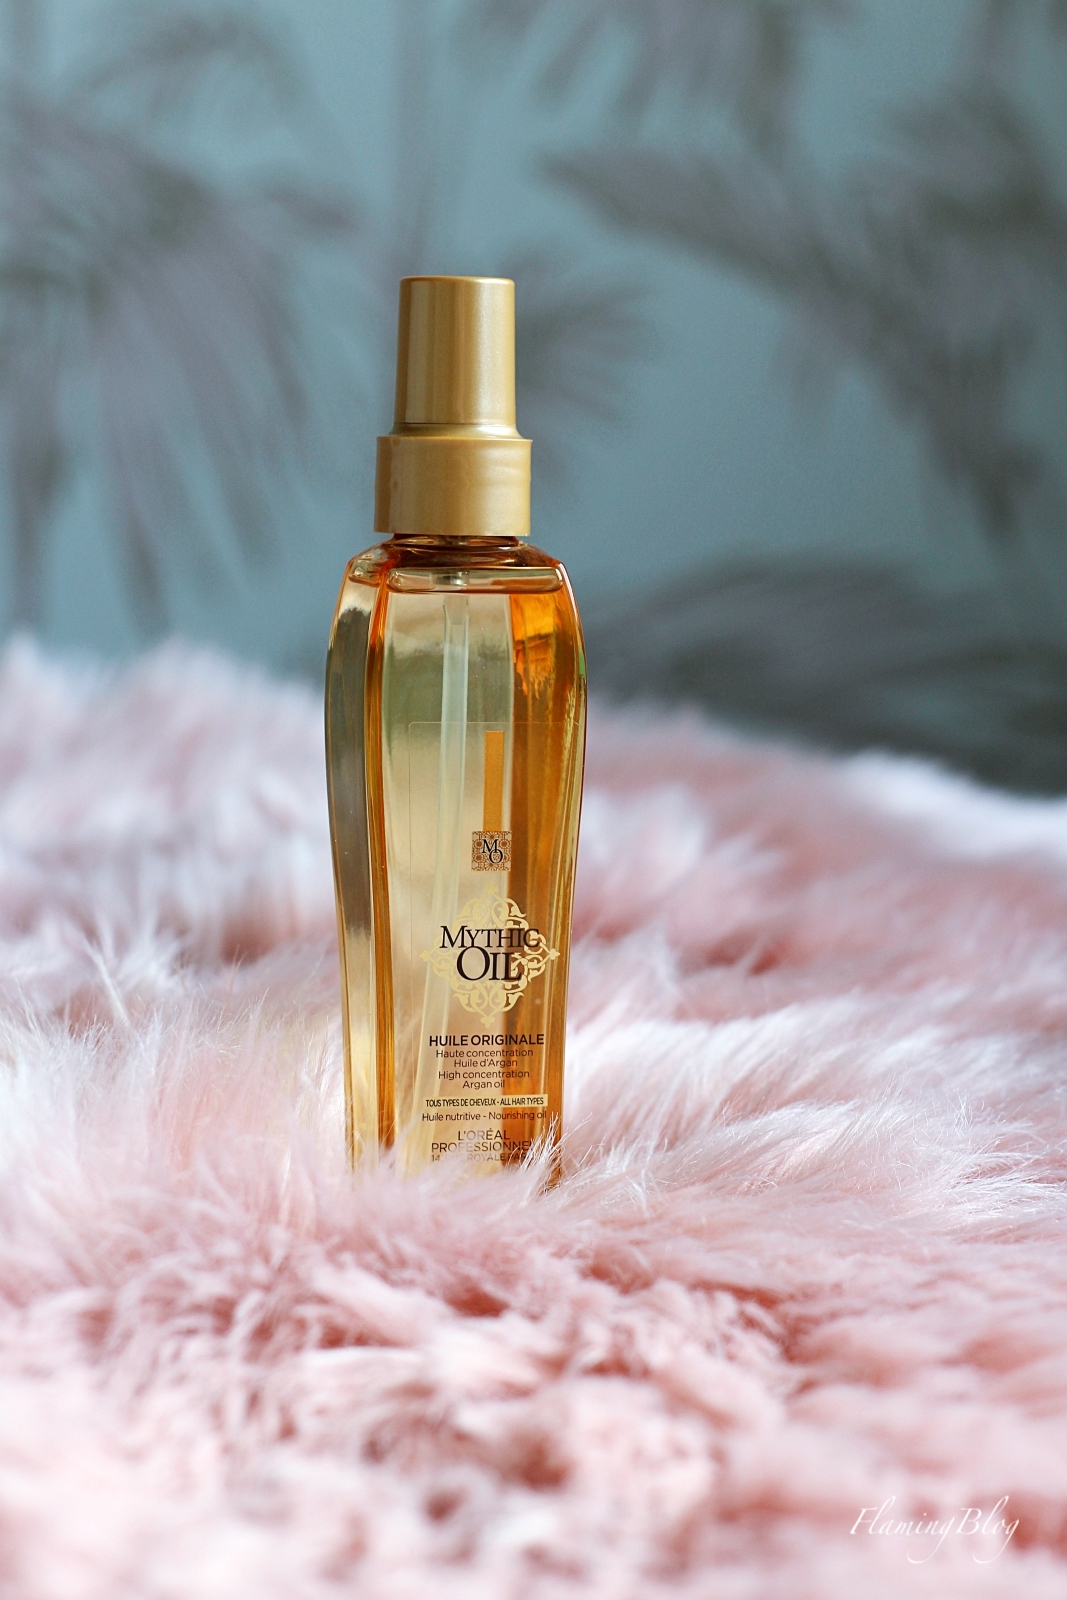 L'Oreal Professionel Mythic Oil Huile Originale opinie blog